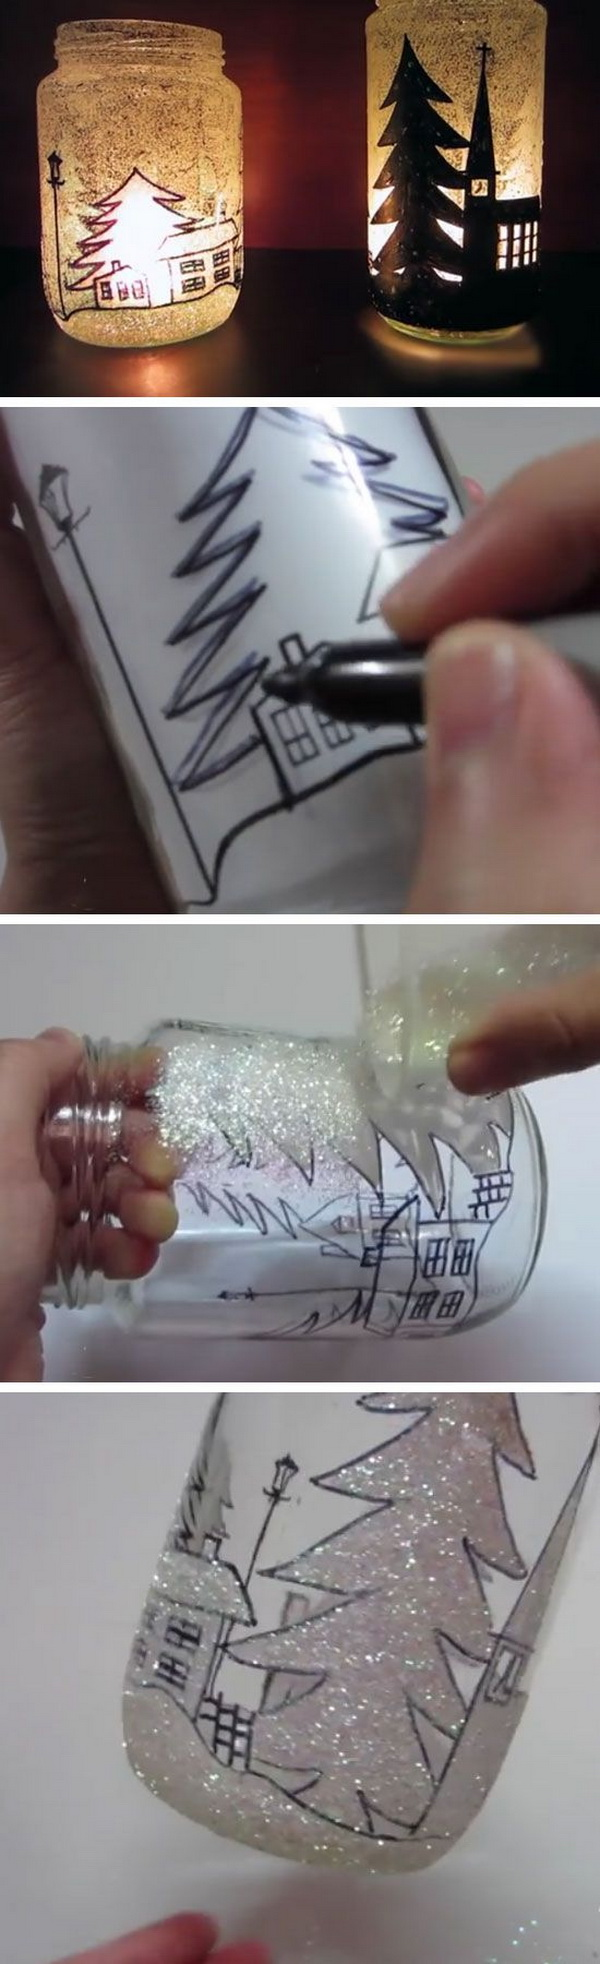 DIY Glittery Christmas Tree Lanterns.